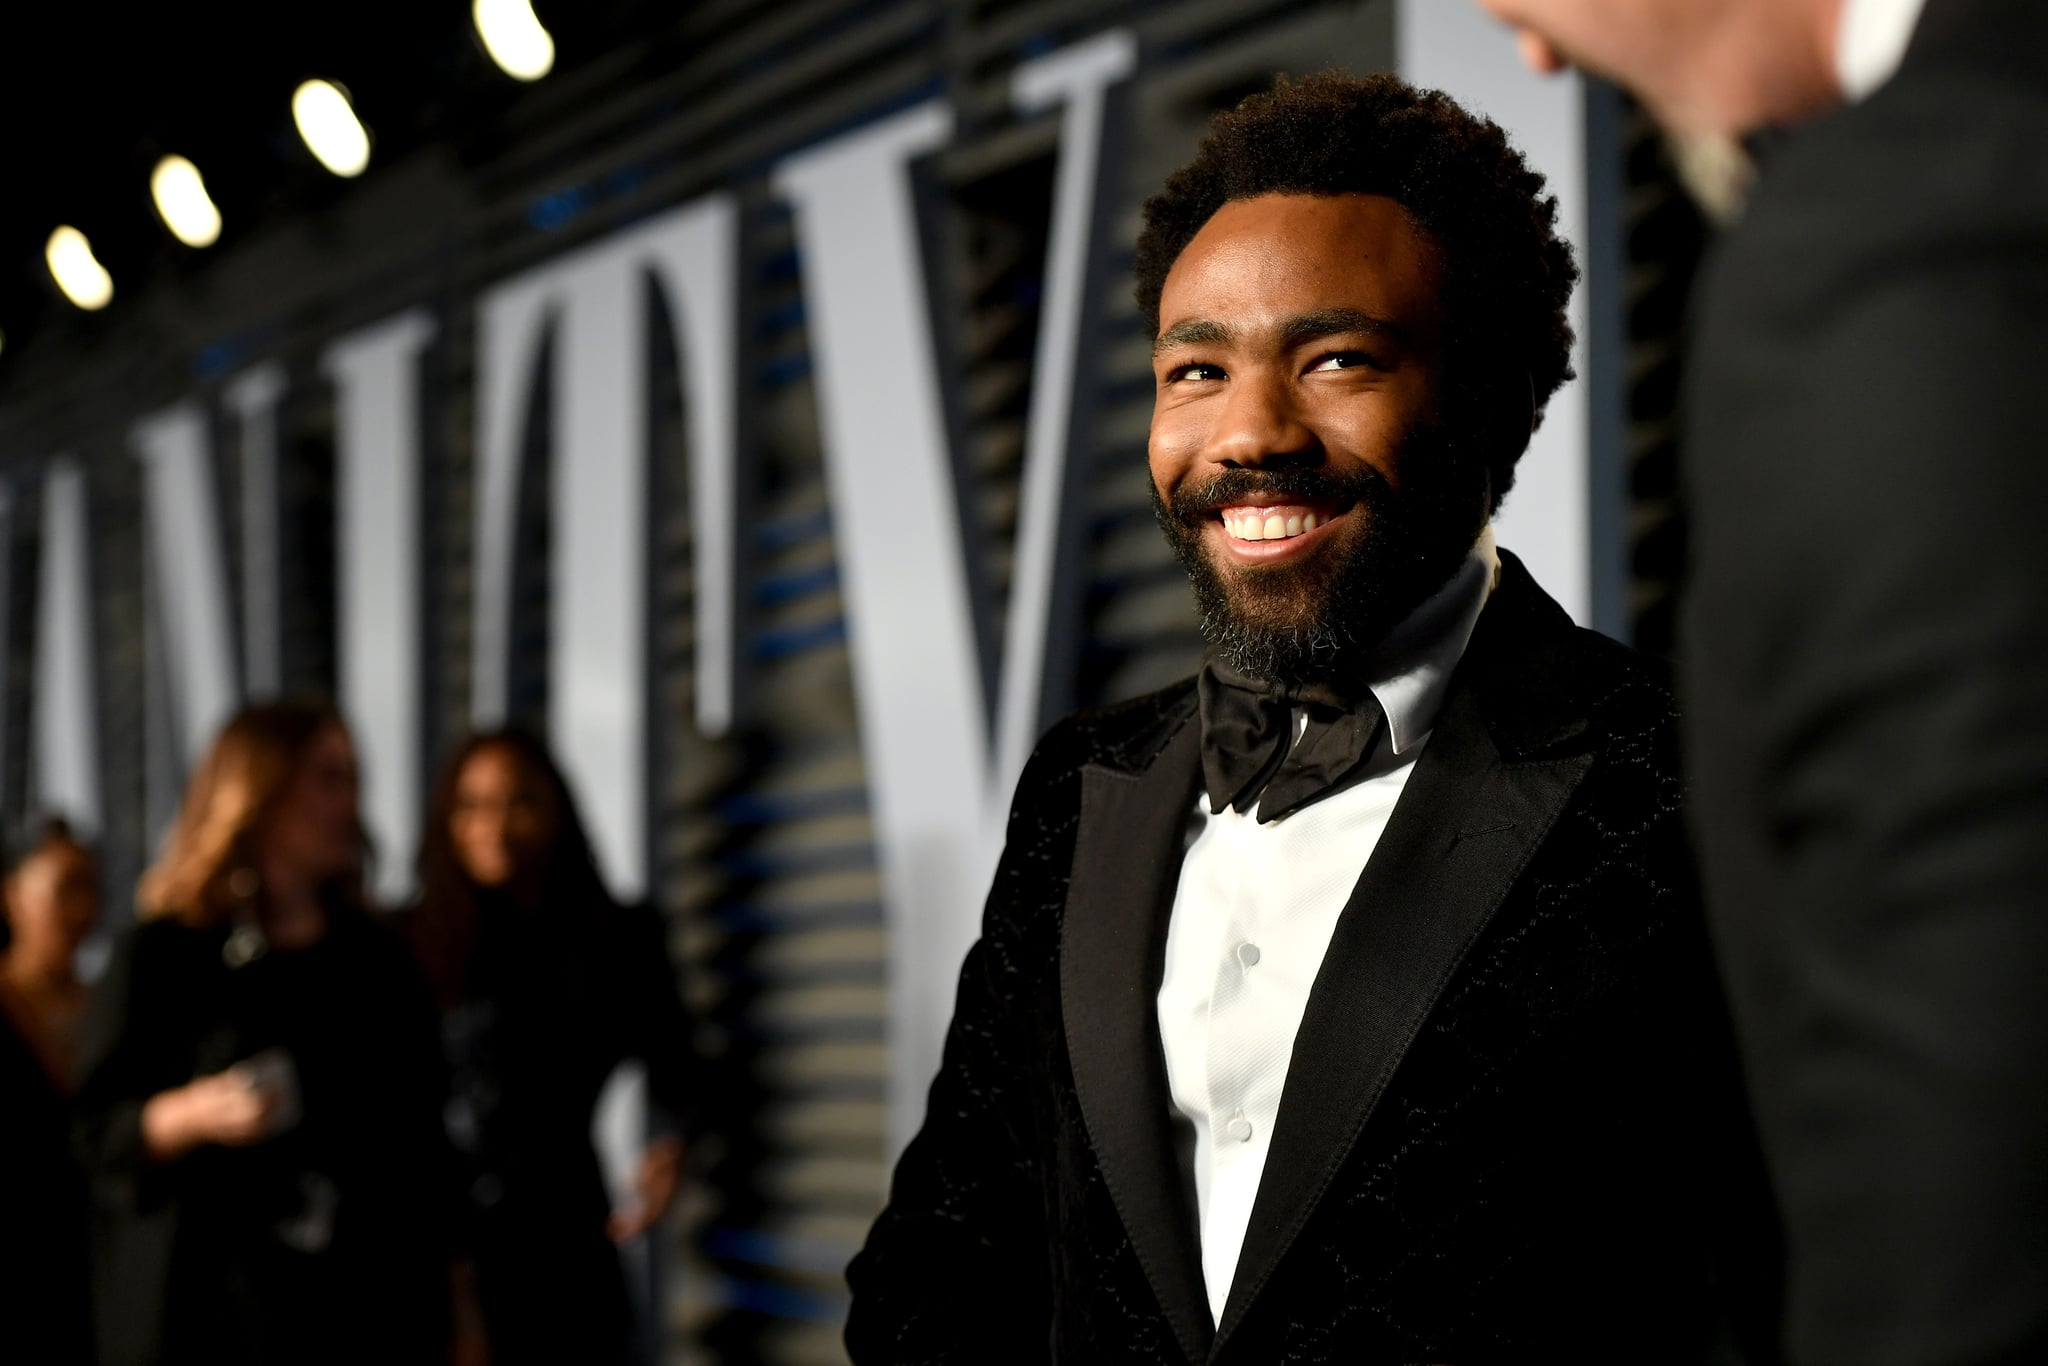 BEVERLY HILLS, CA - MARCH 04:  Donald Glover attends the 2018 Vanity Fair Oscar Party hosted by Radhika Jones at Wallis Annenberg Center for the Performing Arts on March 4, 2018 in Beverly Hills, California.  (Photo by Mike Coppola/VF18/Getty Images for VF)